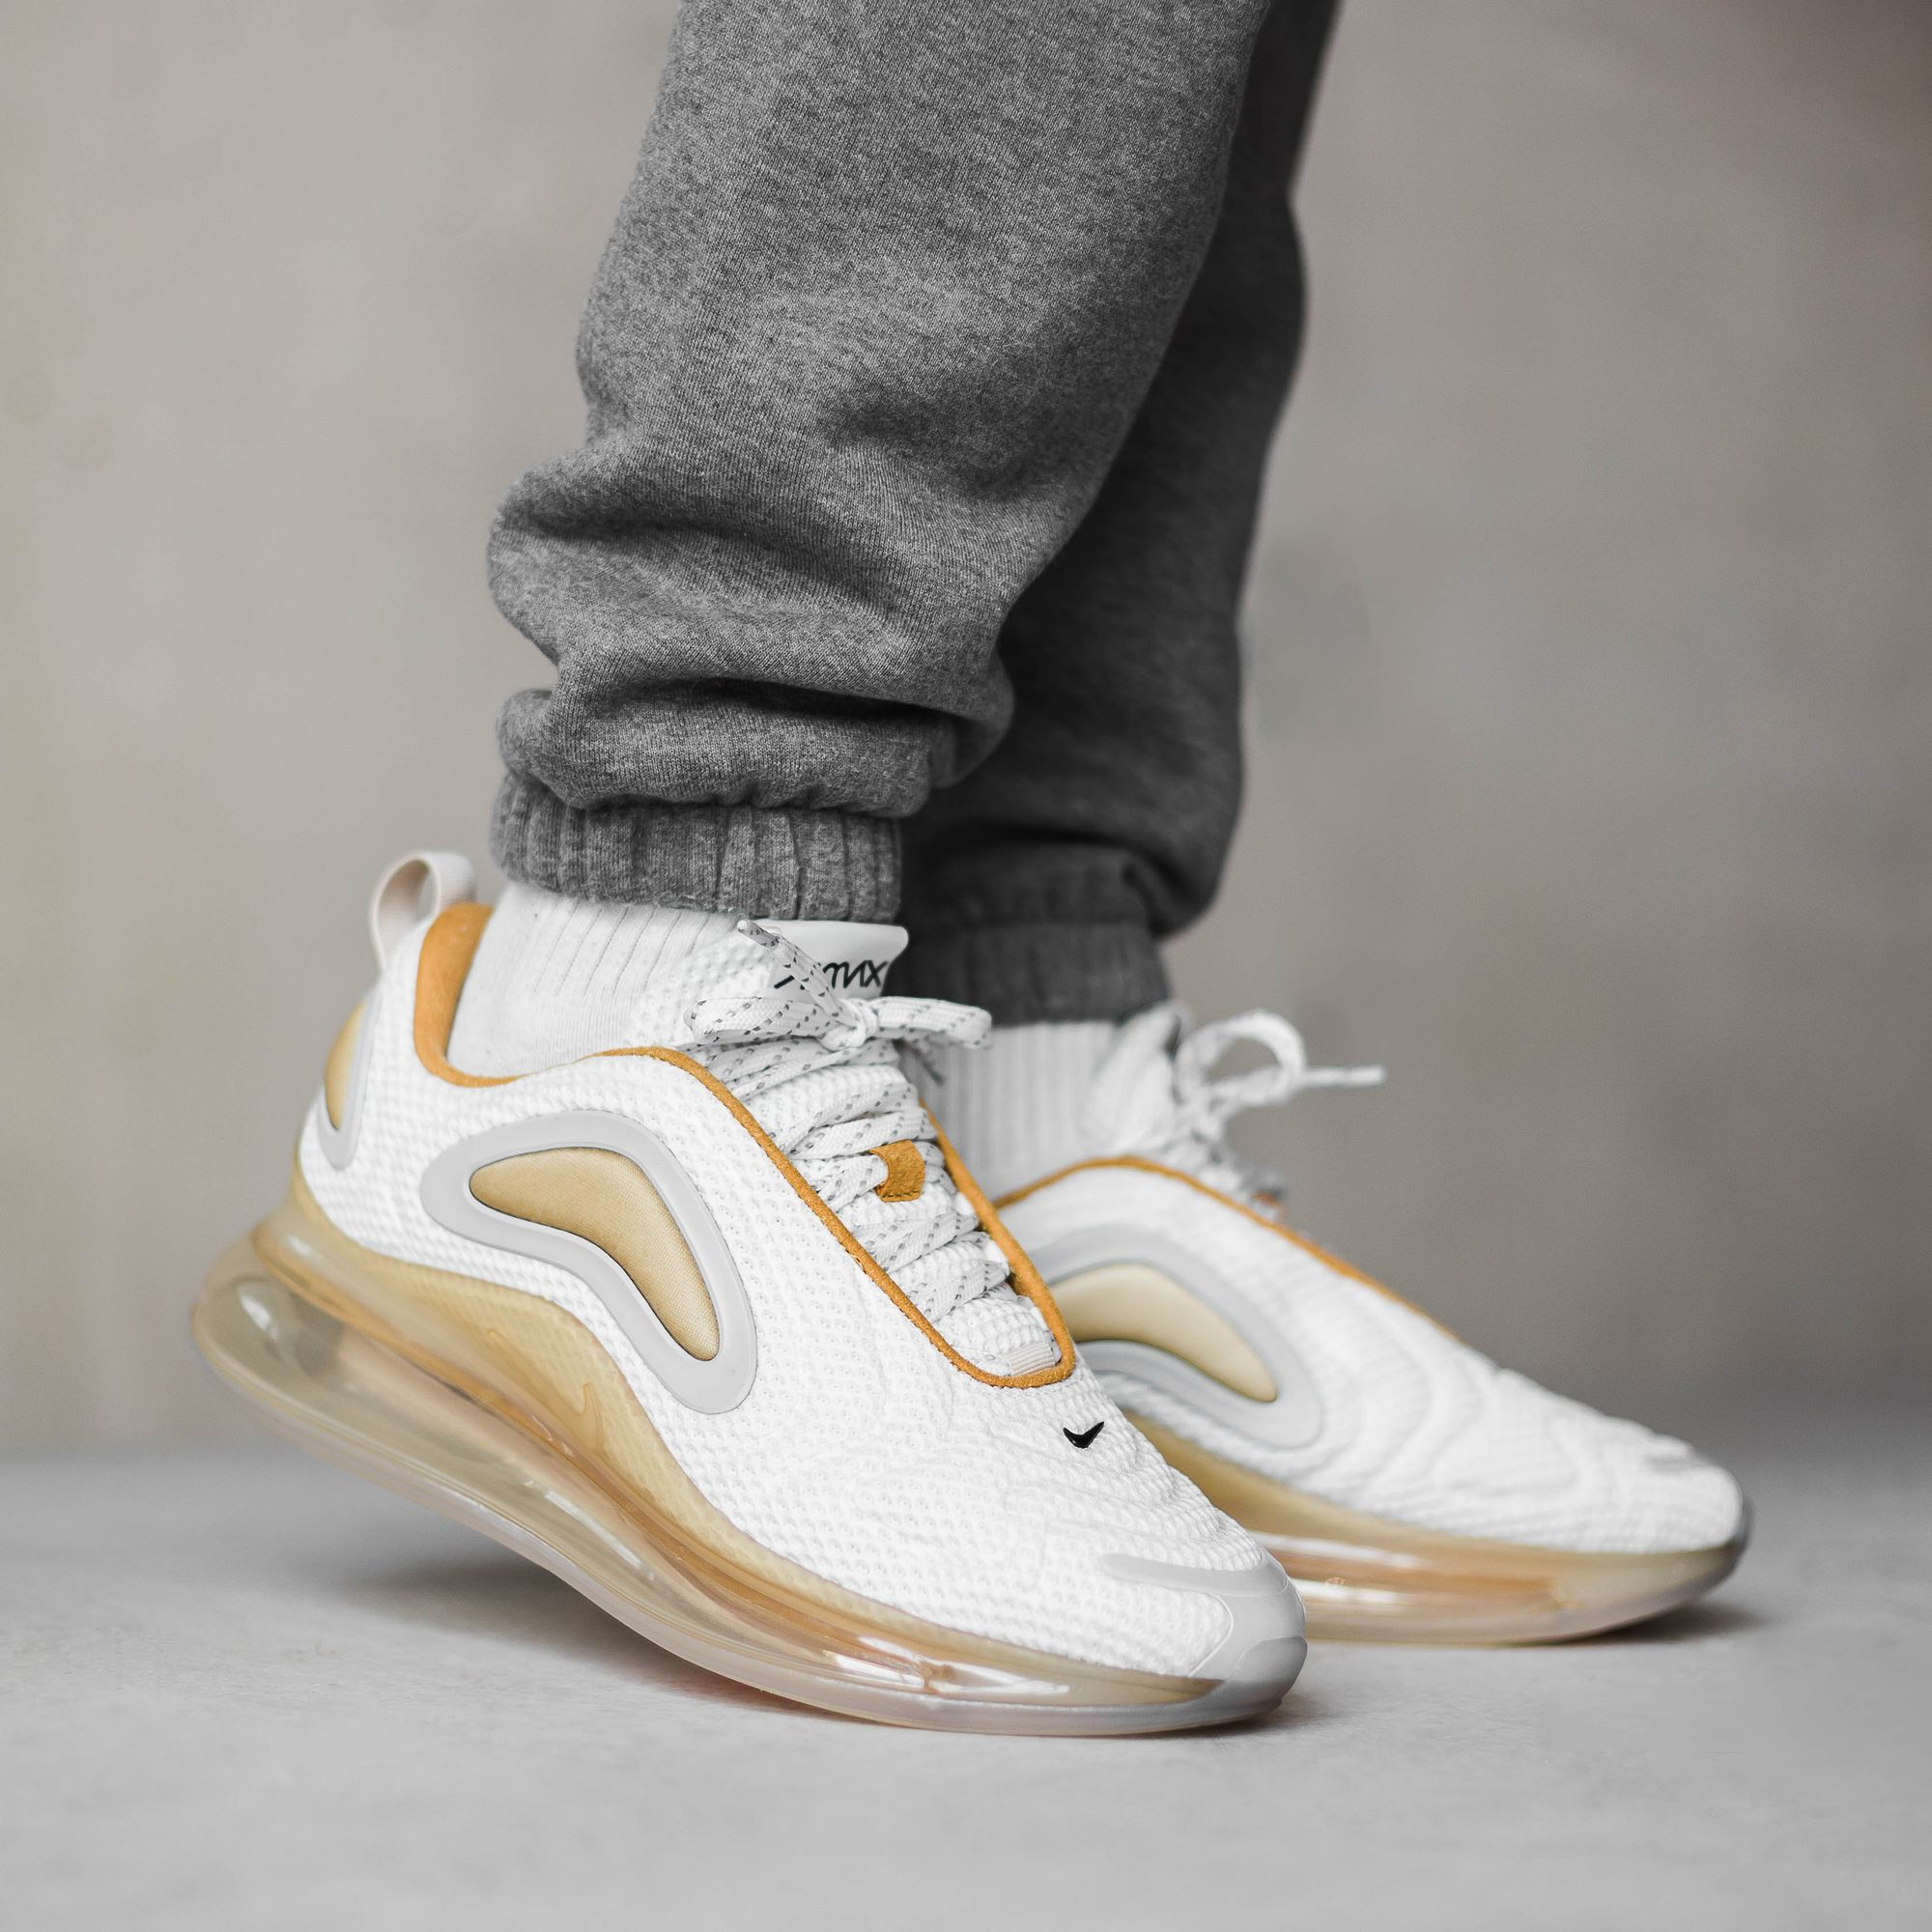 Nike Air Max 720 Pale Vanilla Nike Air Max Slip On Tennis